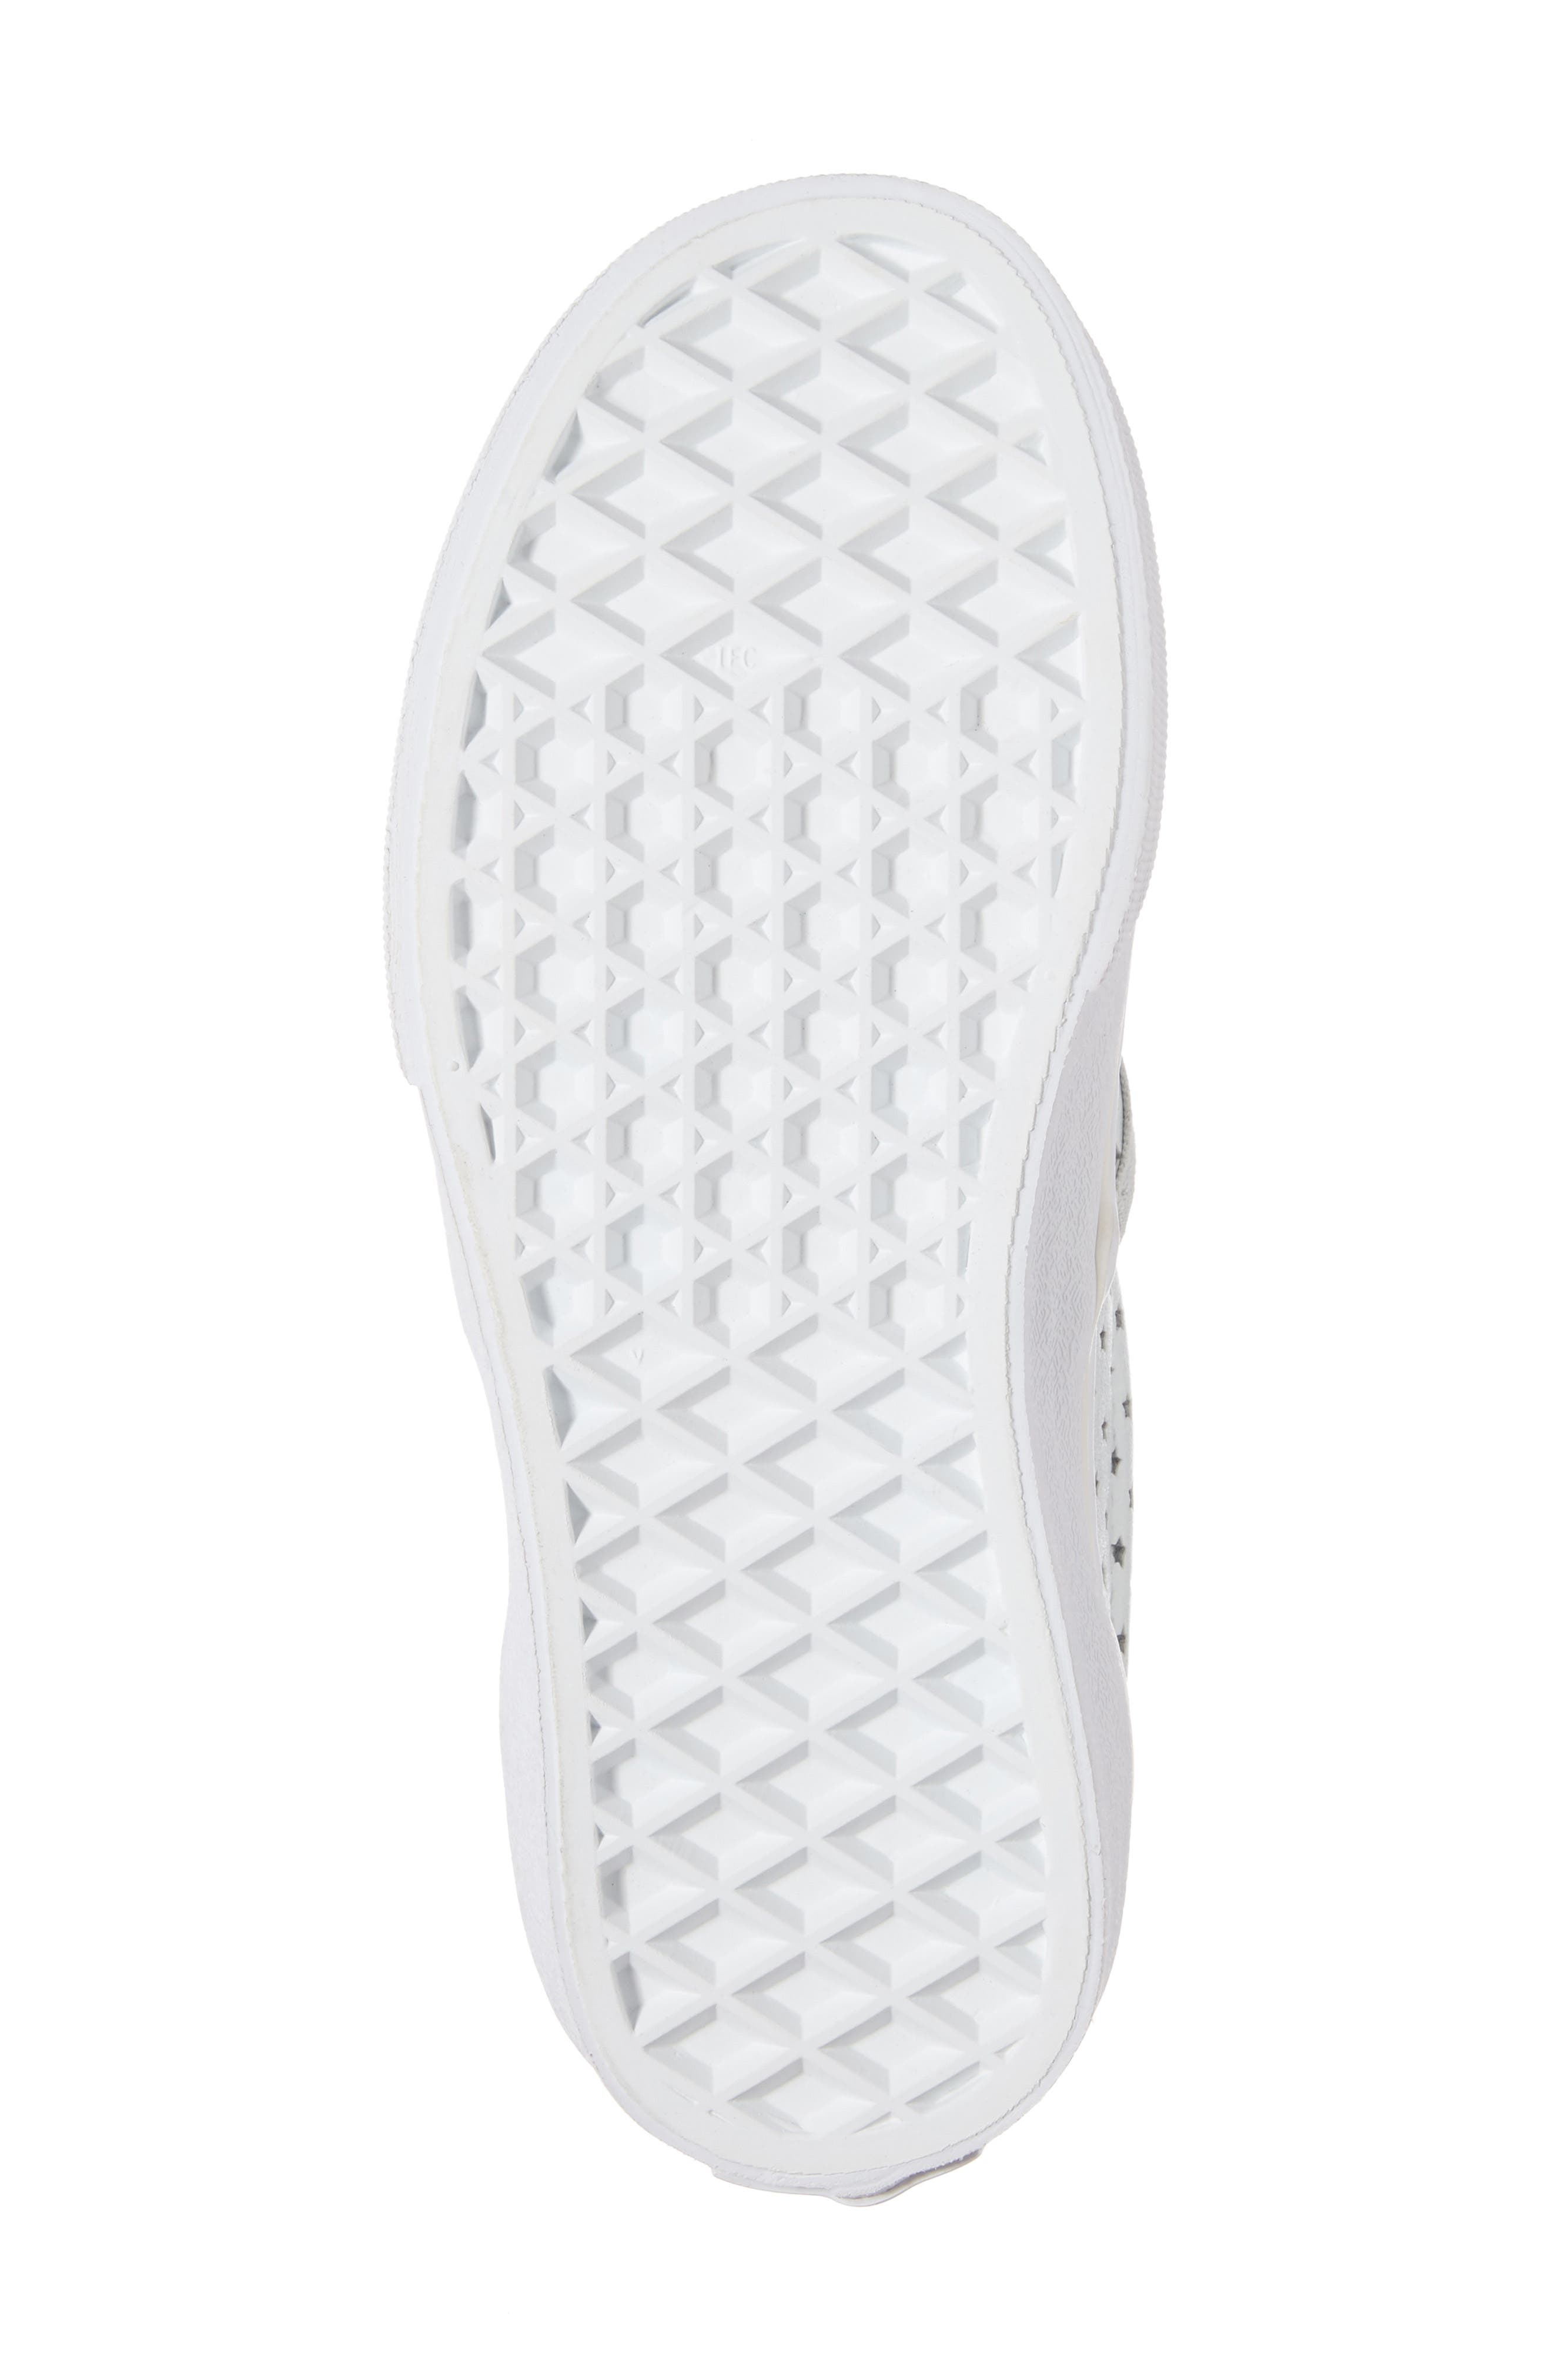 Classic Perforated Slip-On Sneaker,                             Alternate thumbnail 6, color,                             Stars Pearlized Leather